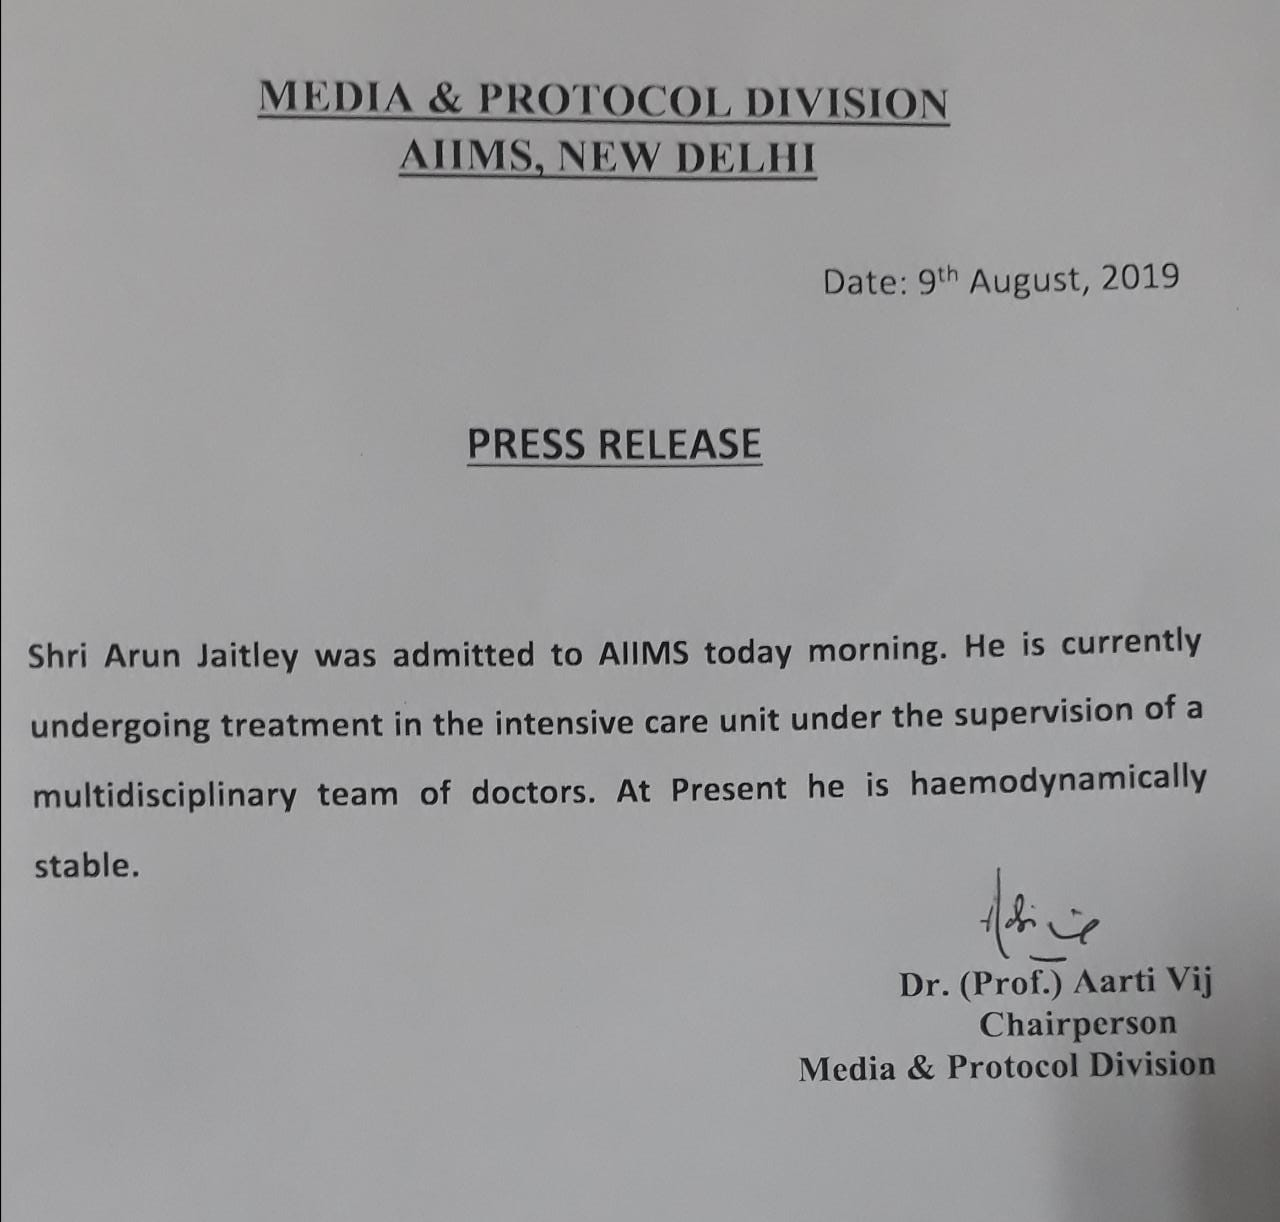 Arun Jaitley Health Bulletin of AIMS Hospital